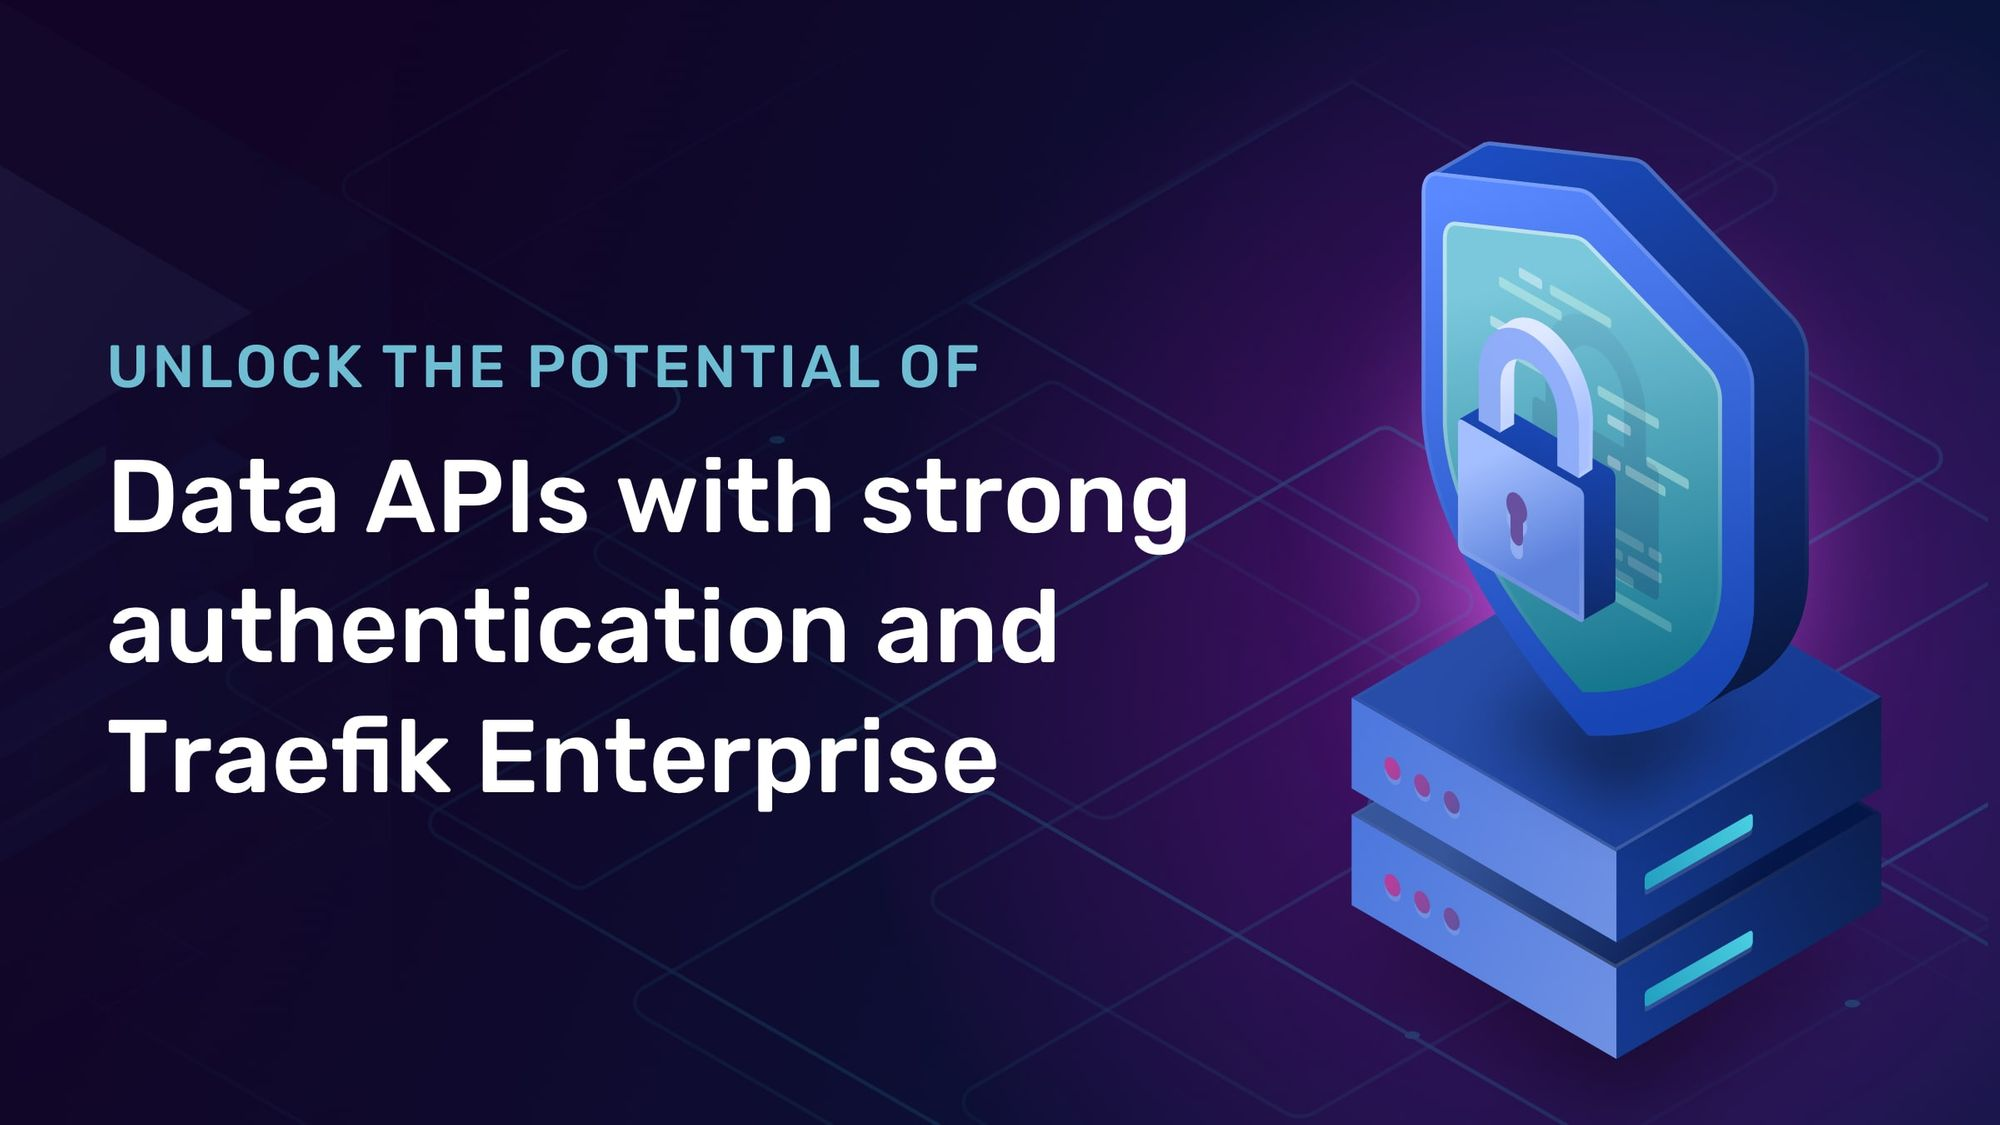 Unlock the potential of data APIs with strong authentication and Traefik Enterprise